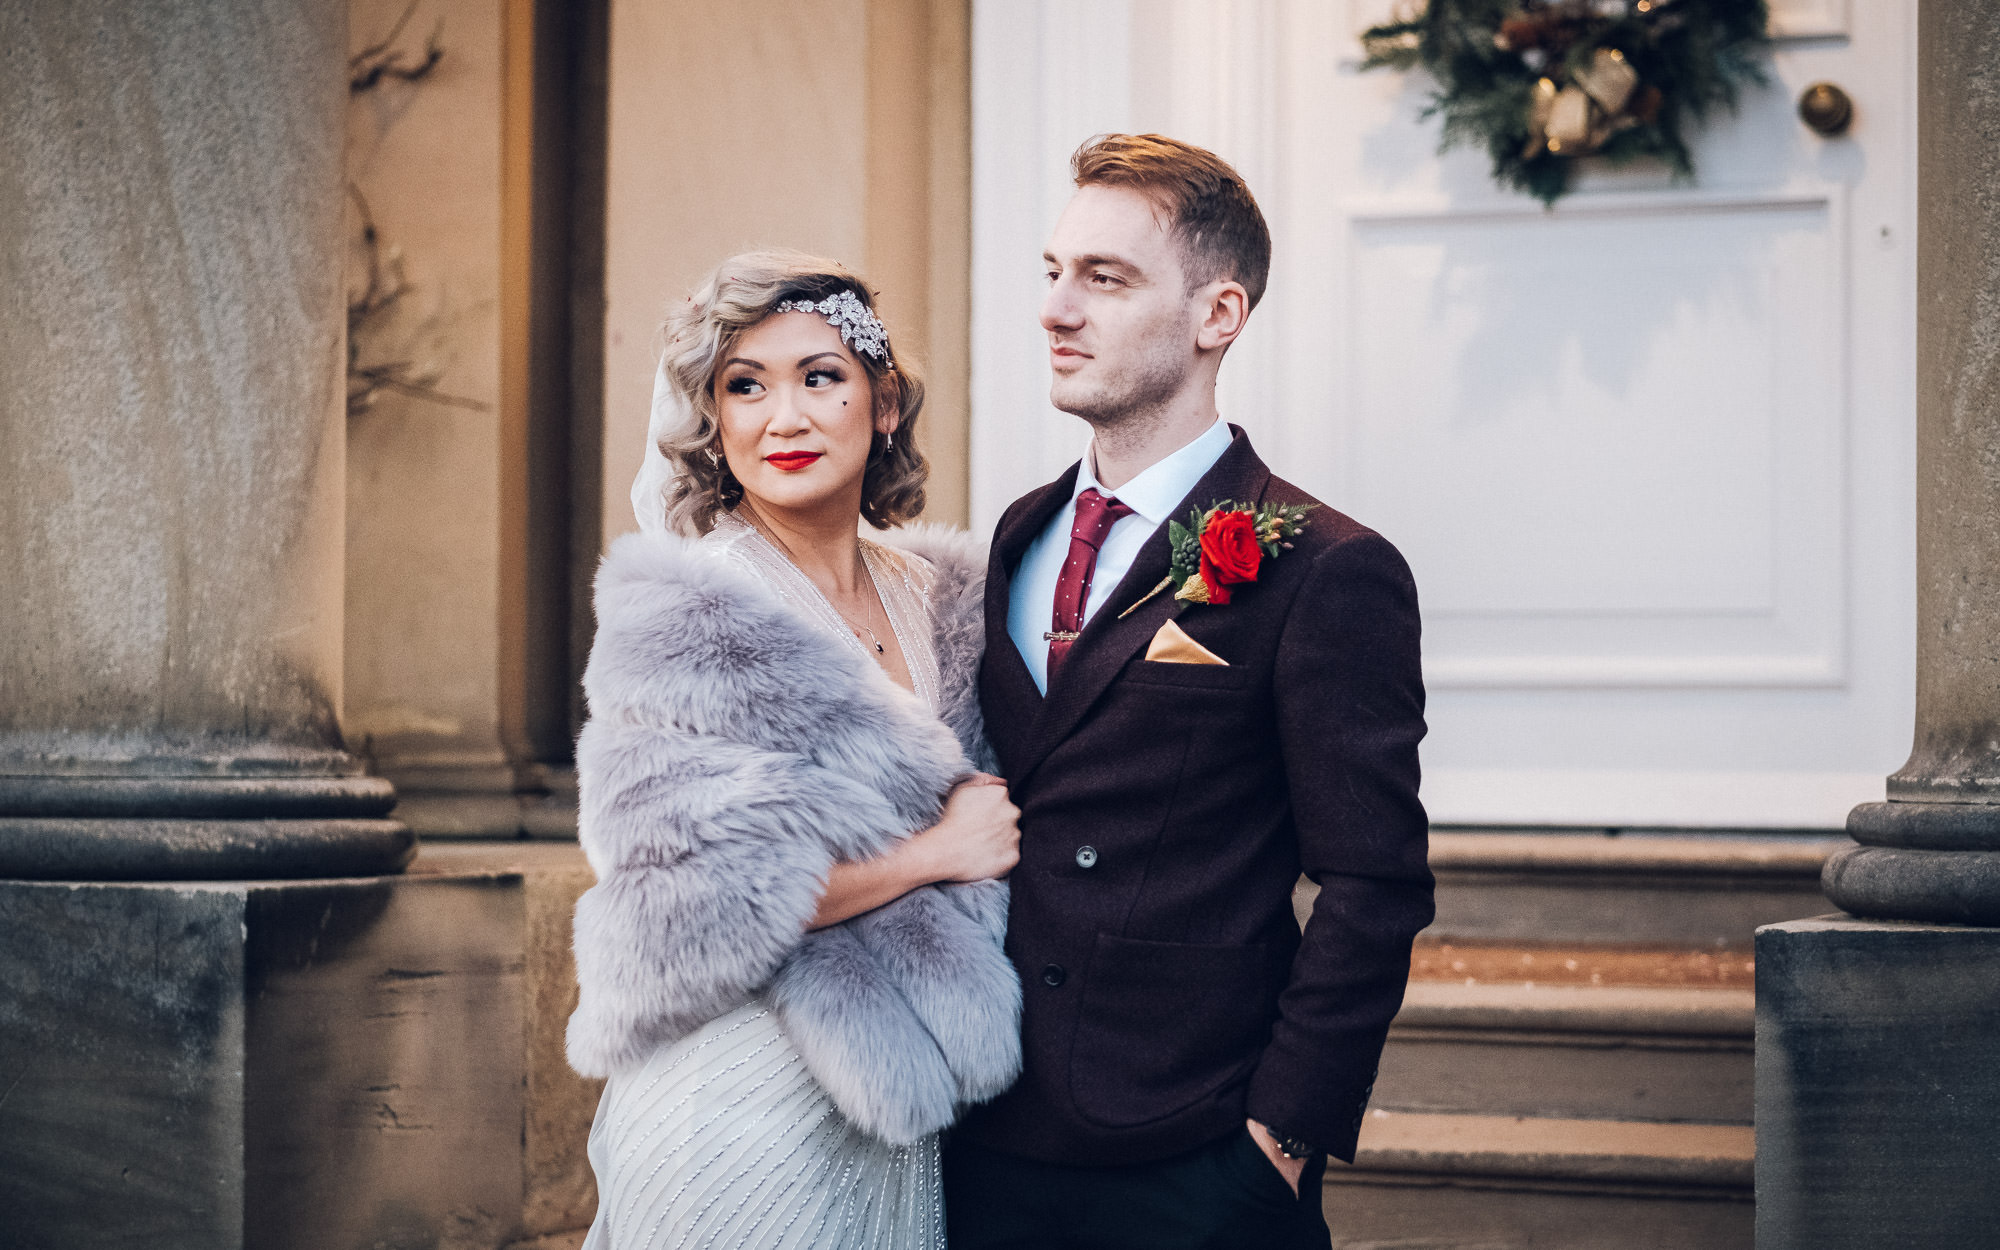 bride and groom standing together wedding photography